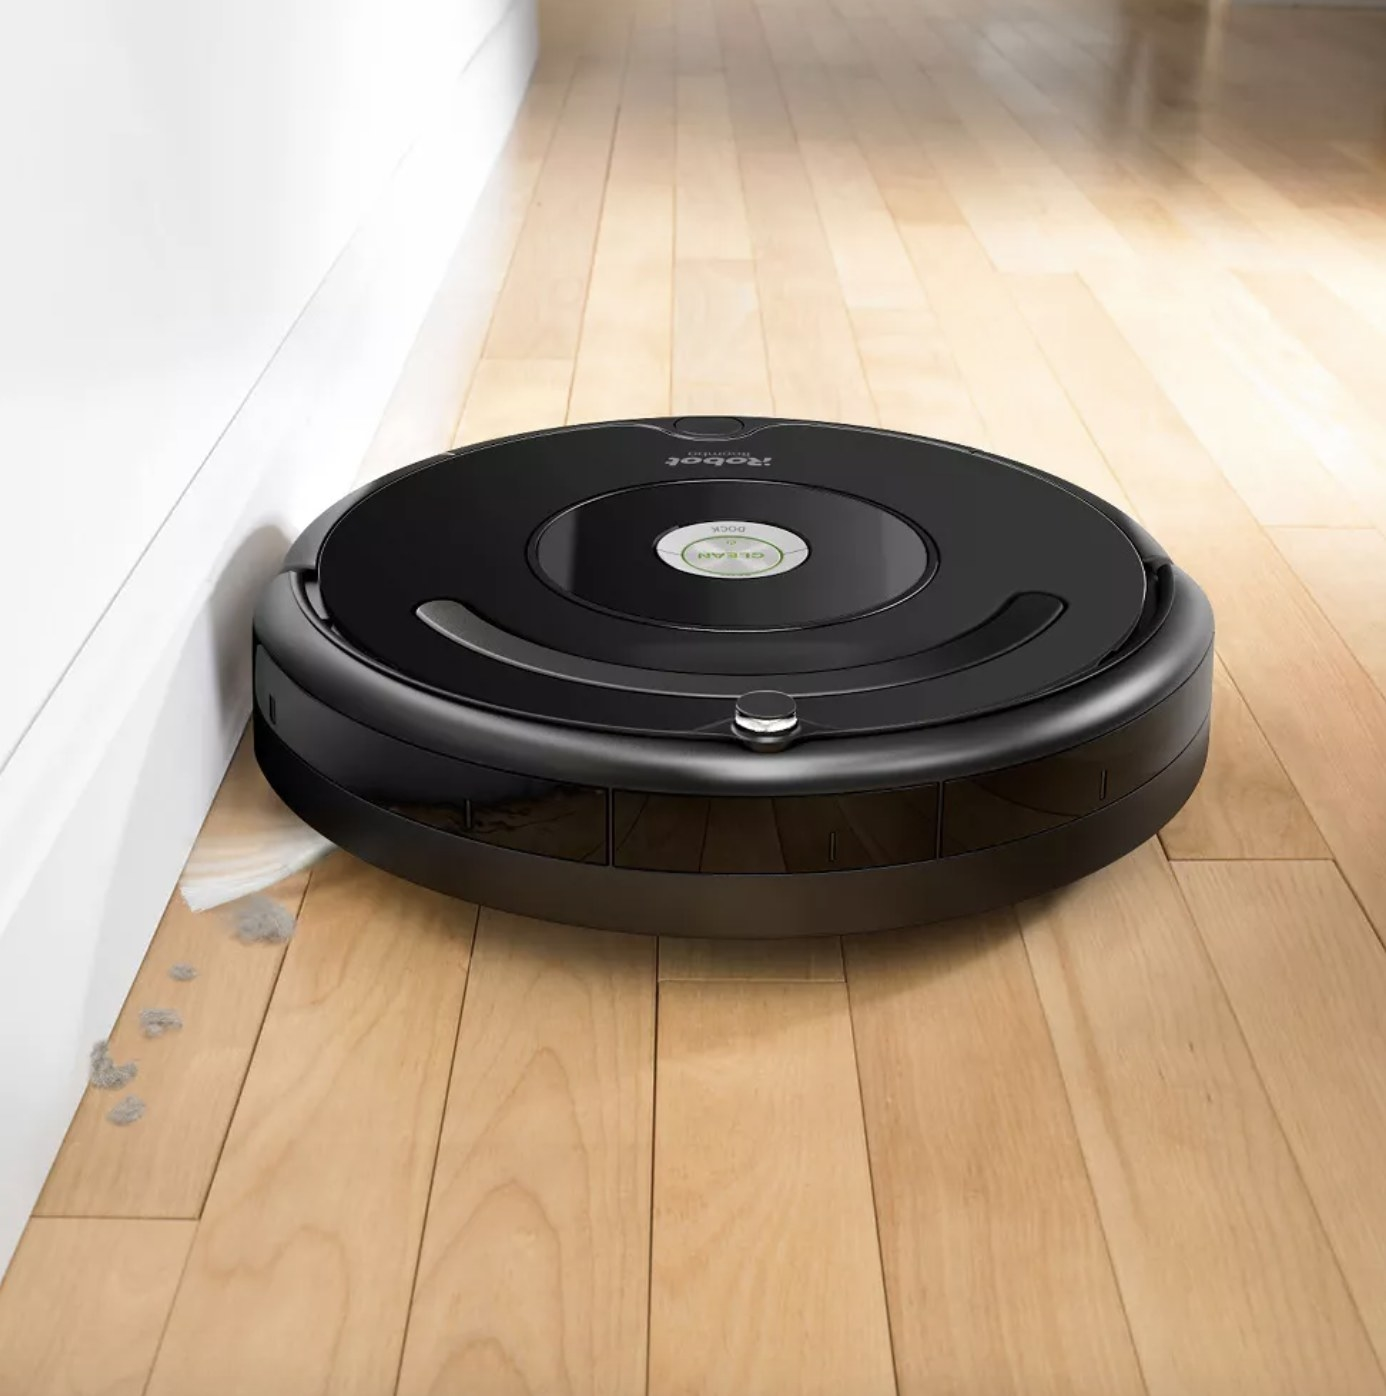 the robot vacuum cleaning up dirt